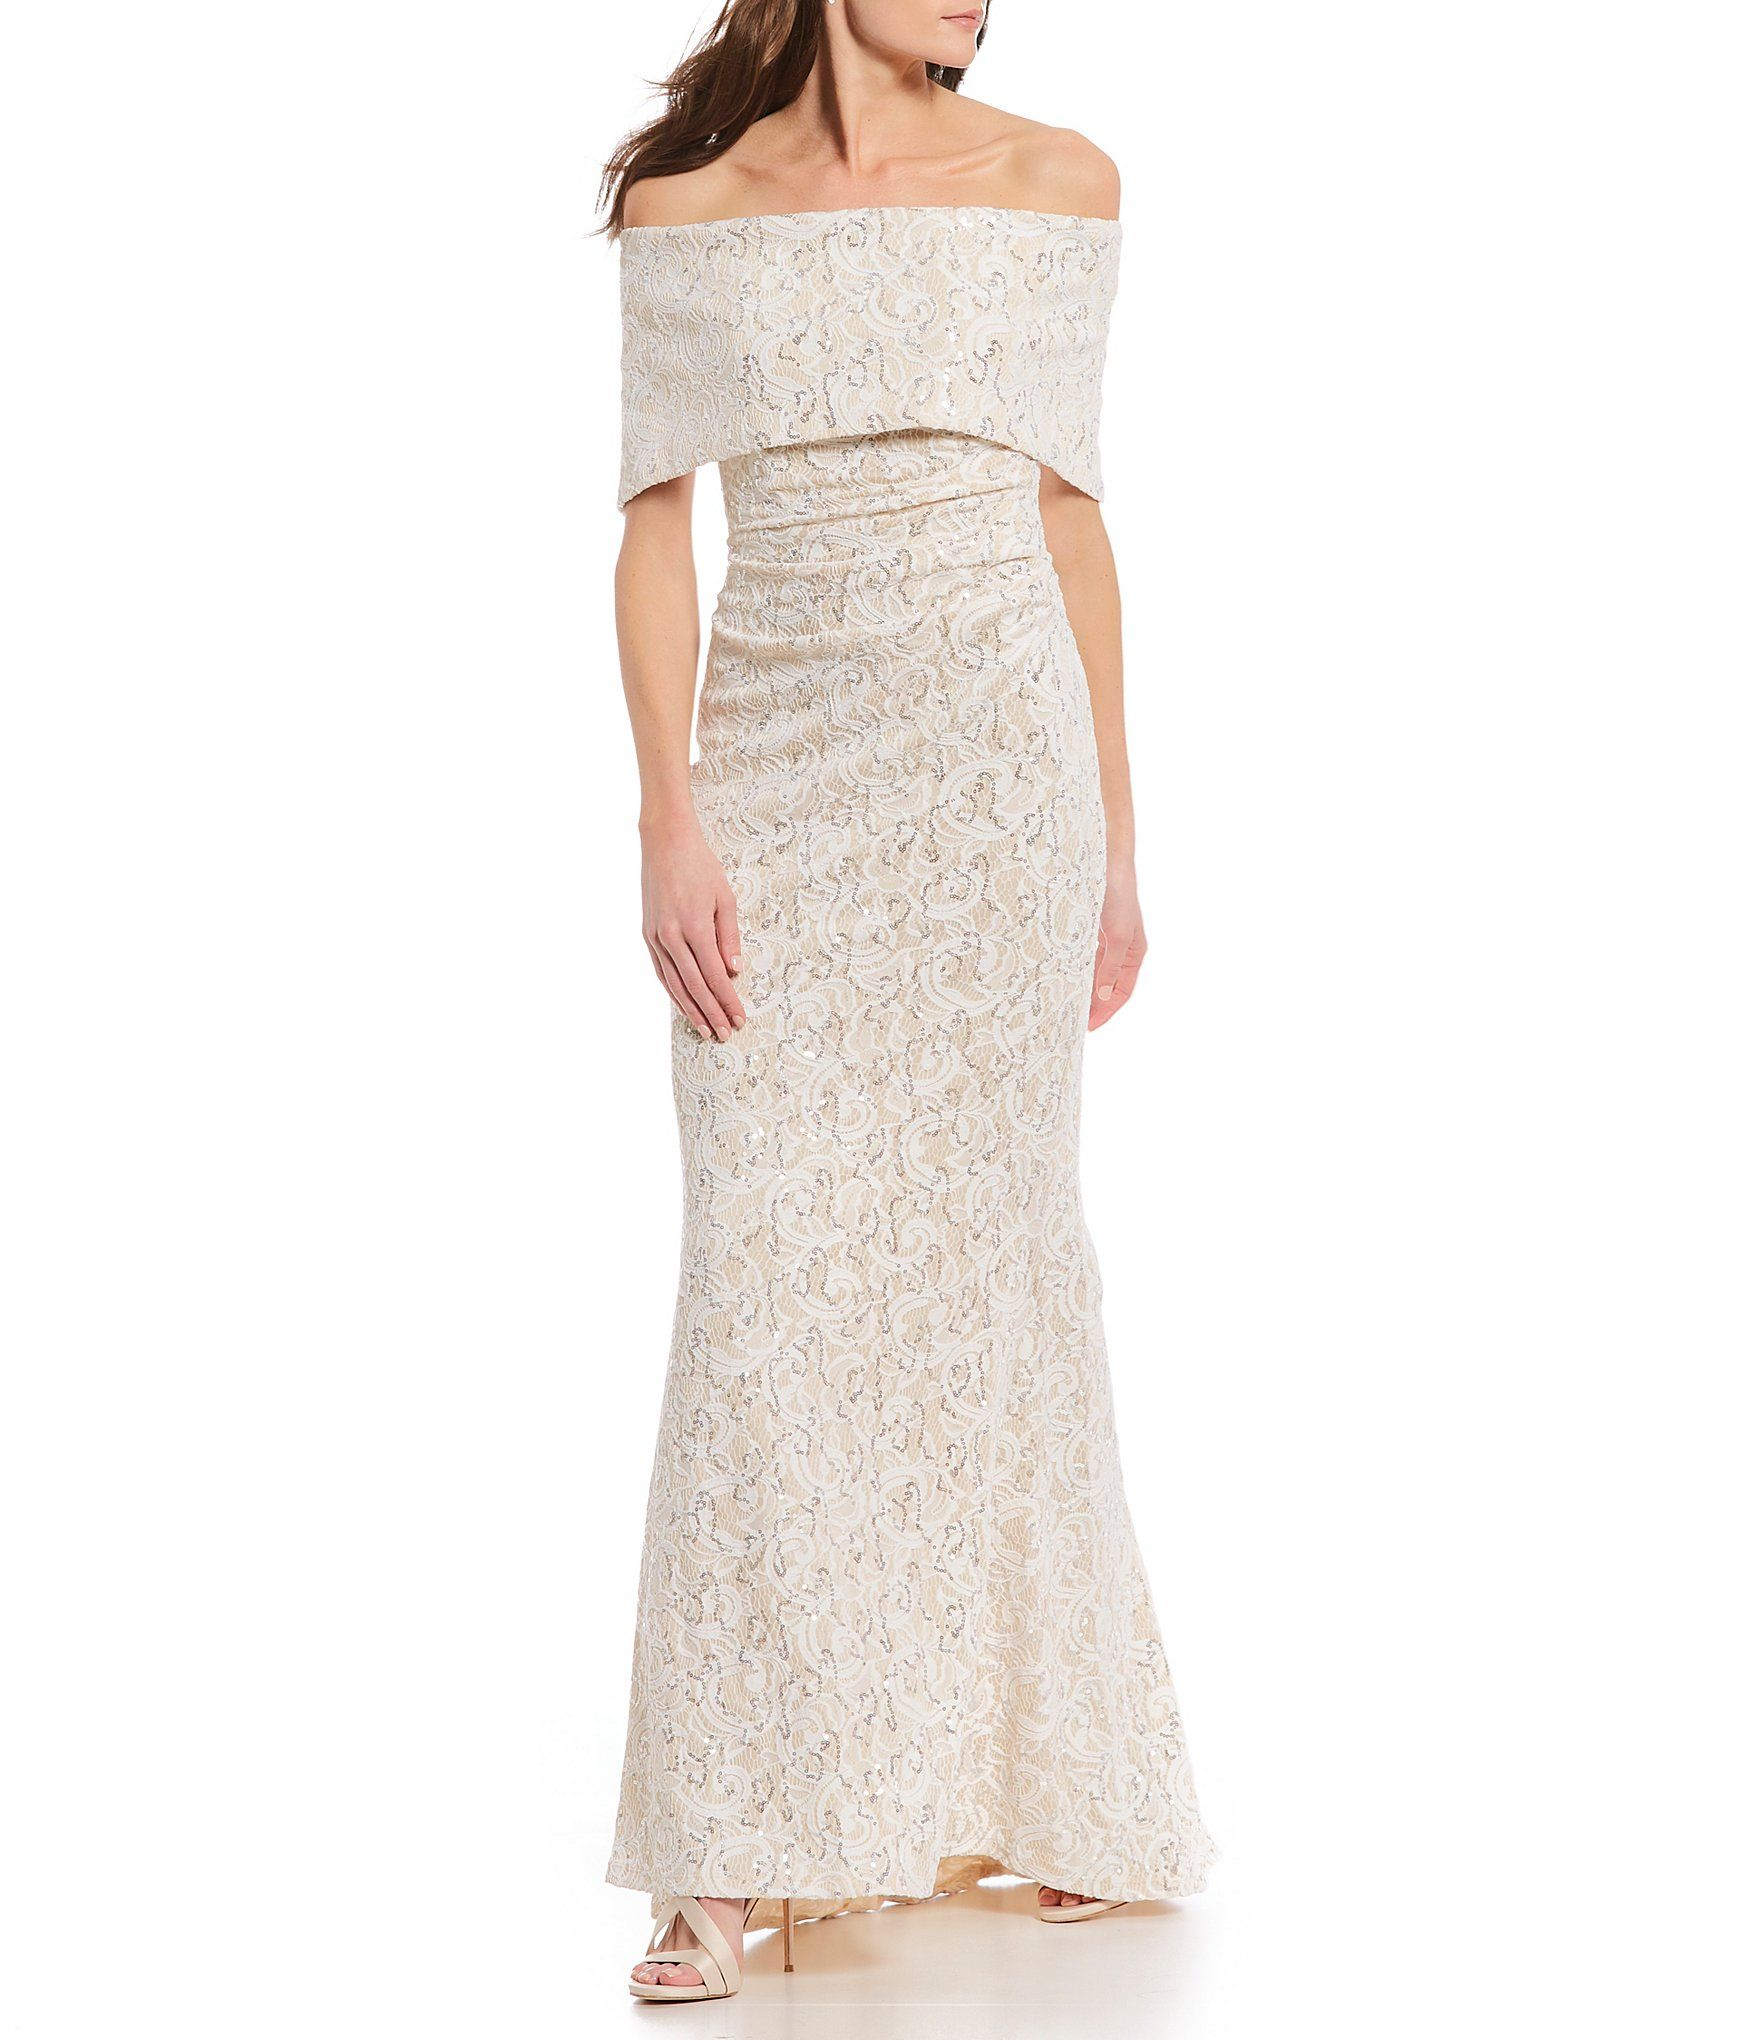 e7e24136ed9 Shop for Vince Camuto Off-the-Shoulder Popover Sequin Lace Gown at  Dillards. Visit